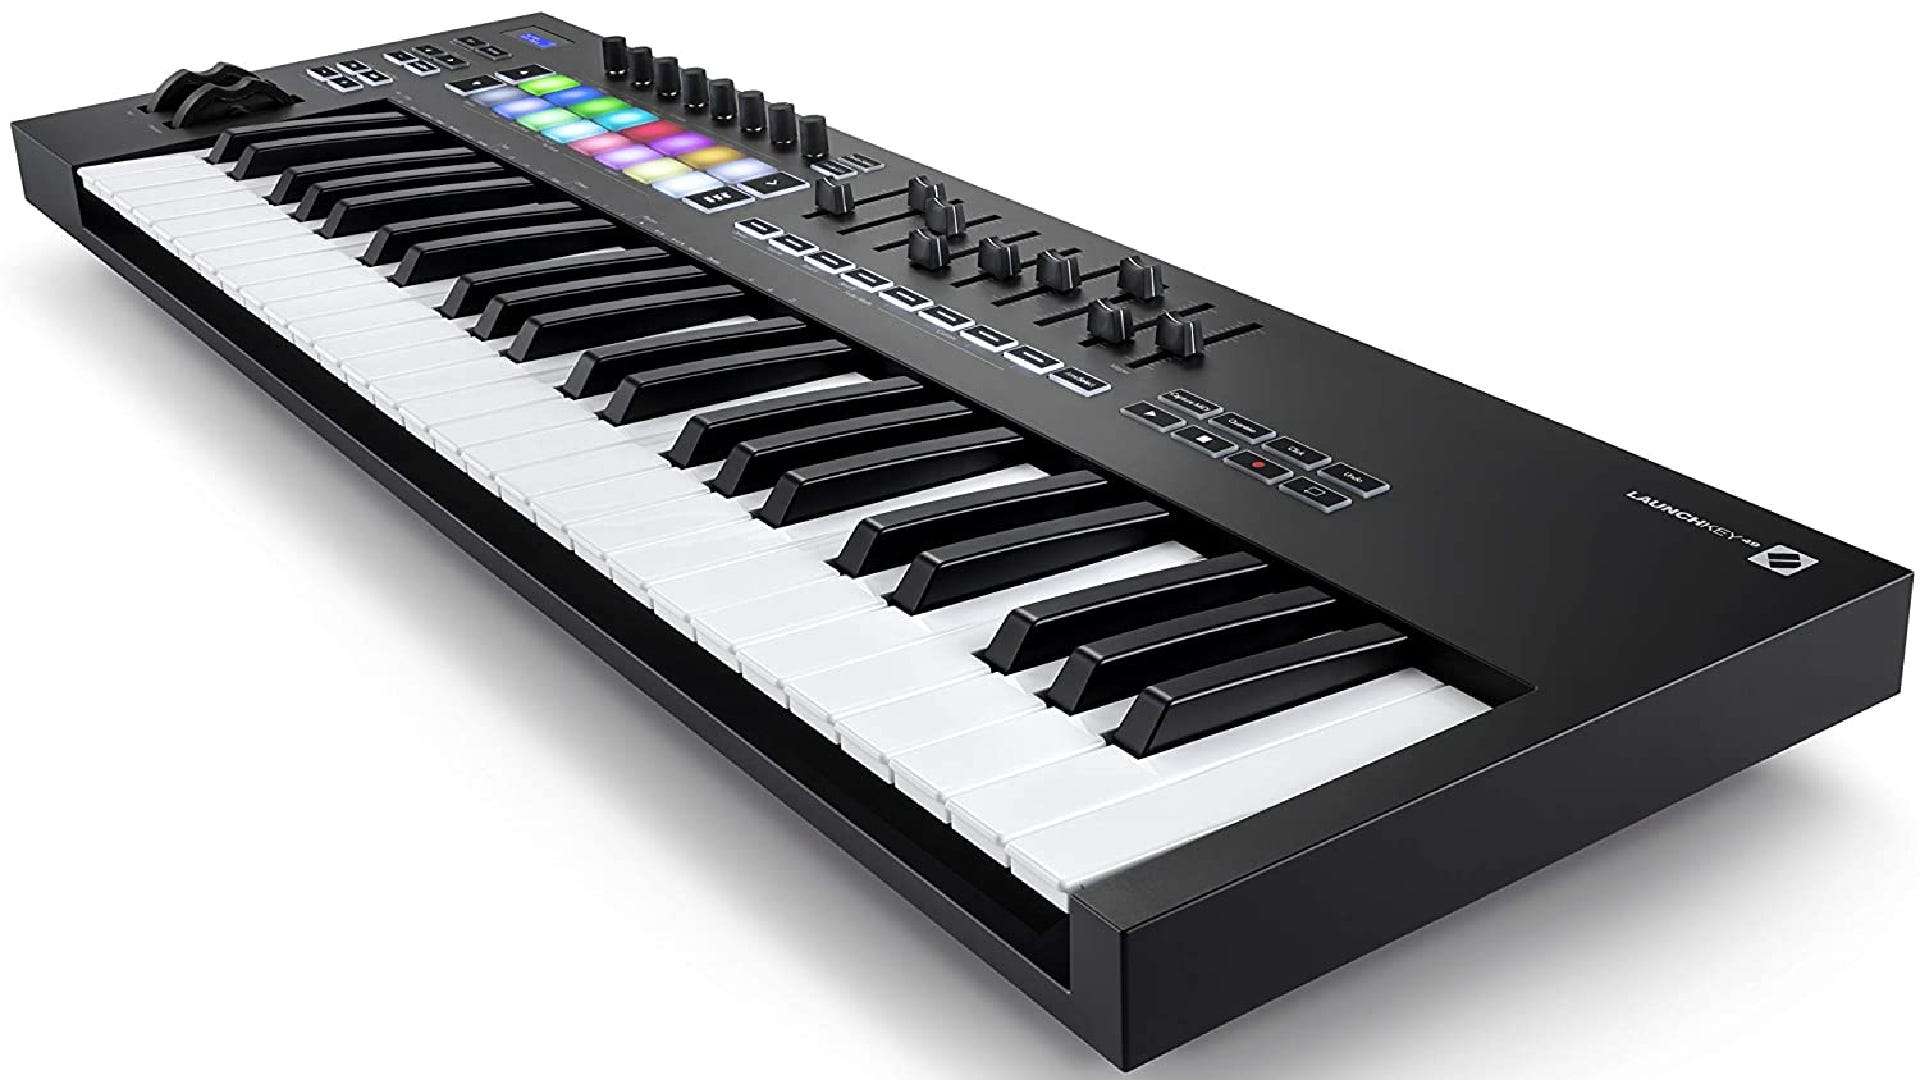 A large MIDI keyboard with 49 piano keys, 16 pads, and multiple knobs, sliders, and buttons.